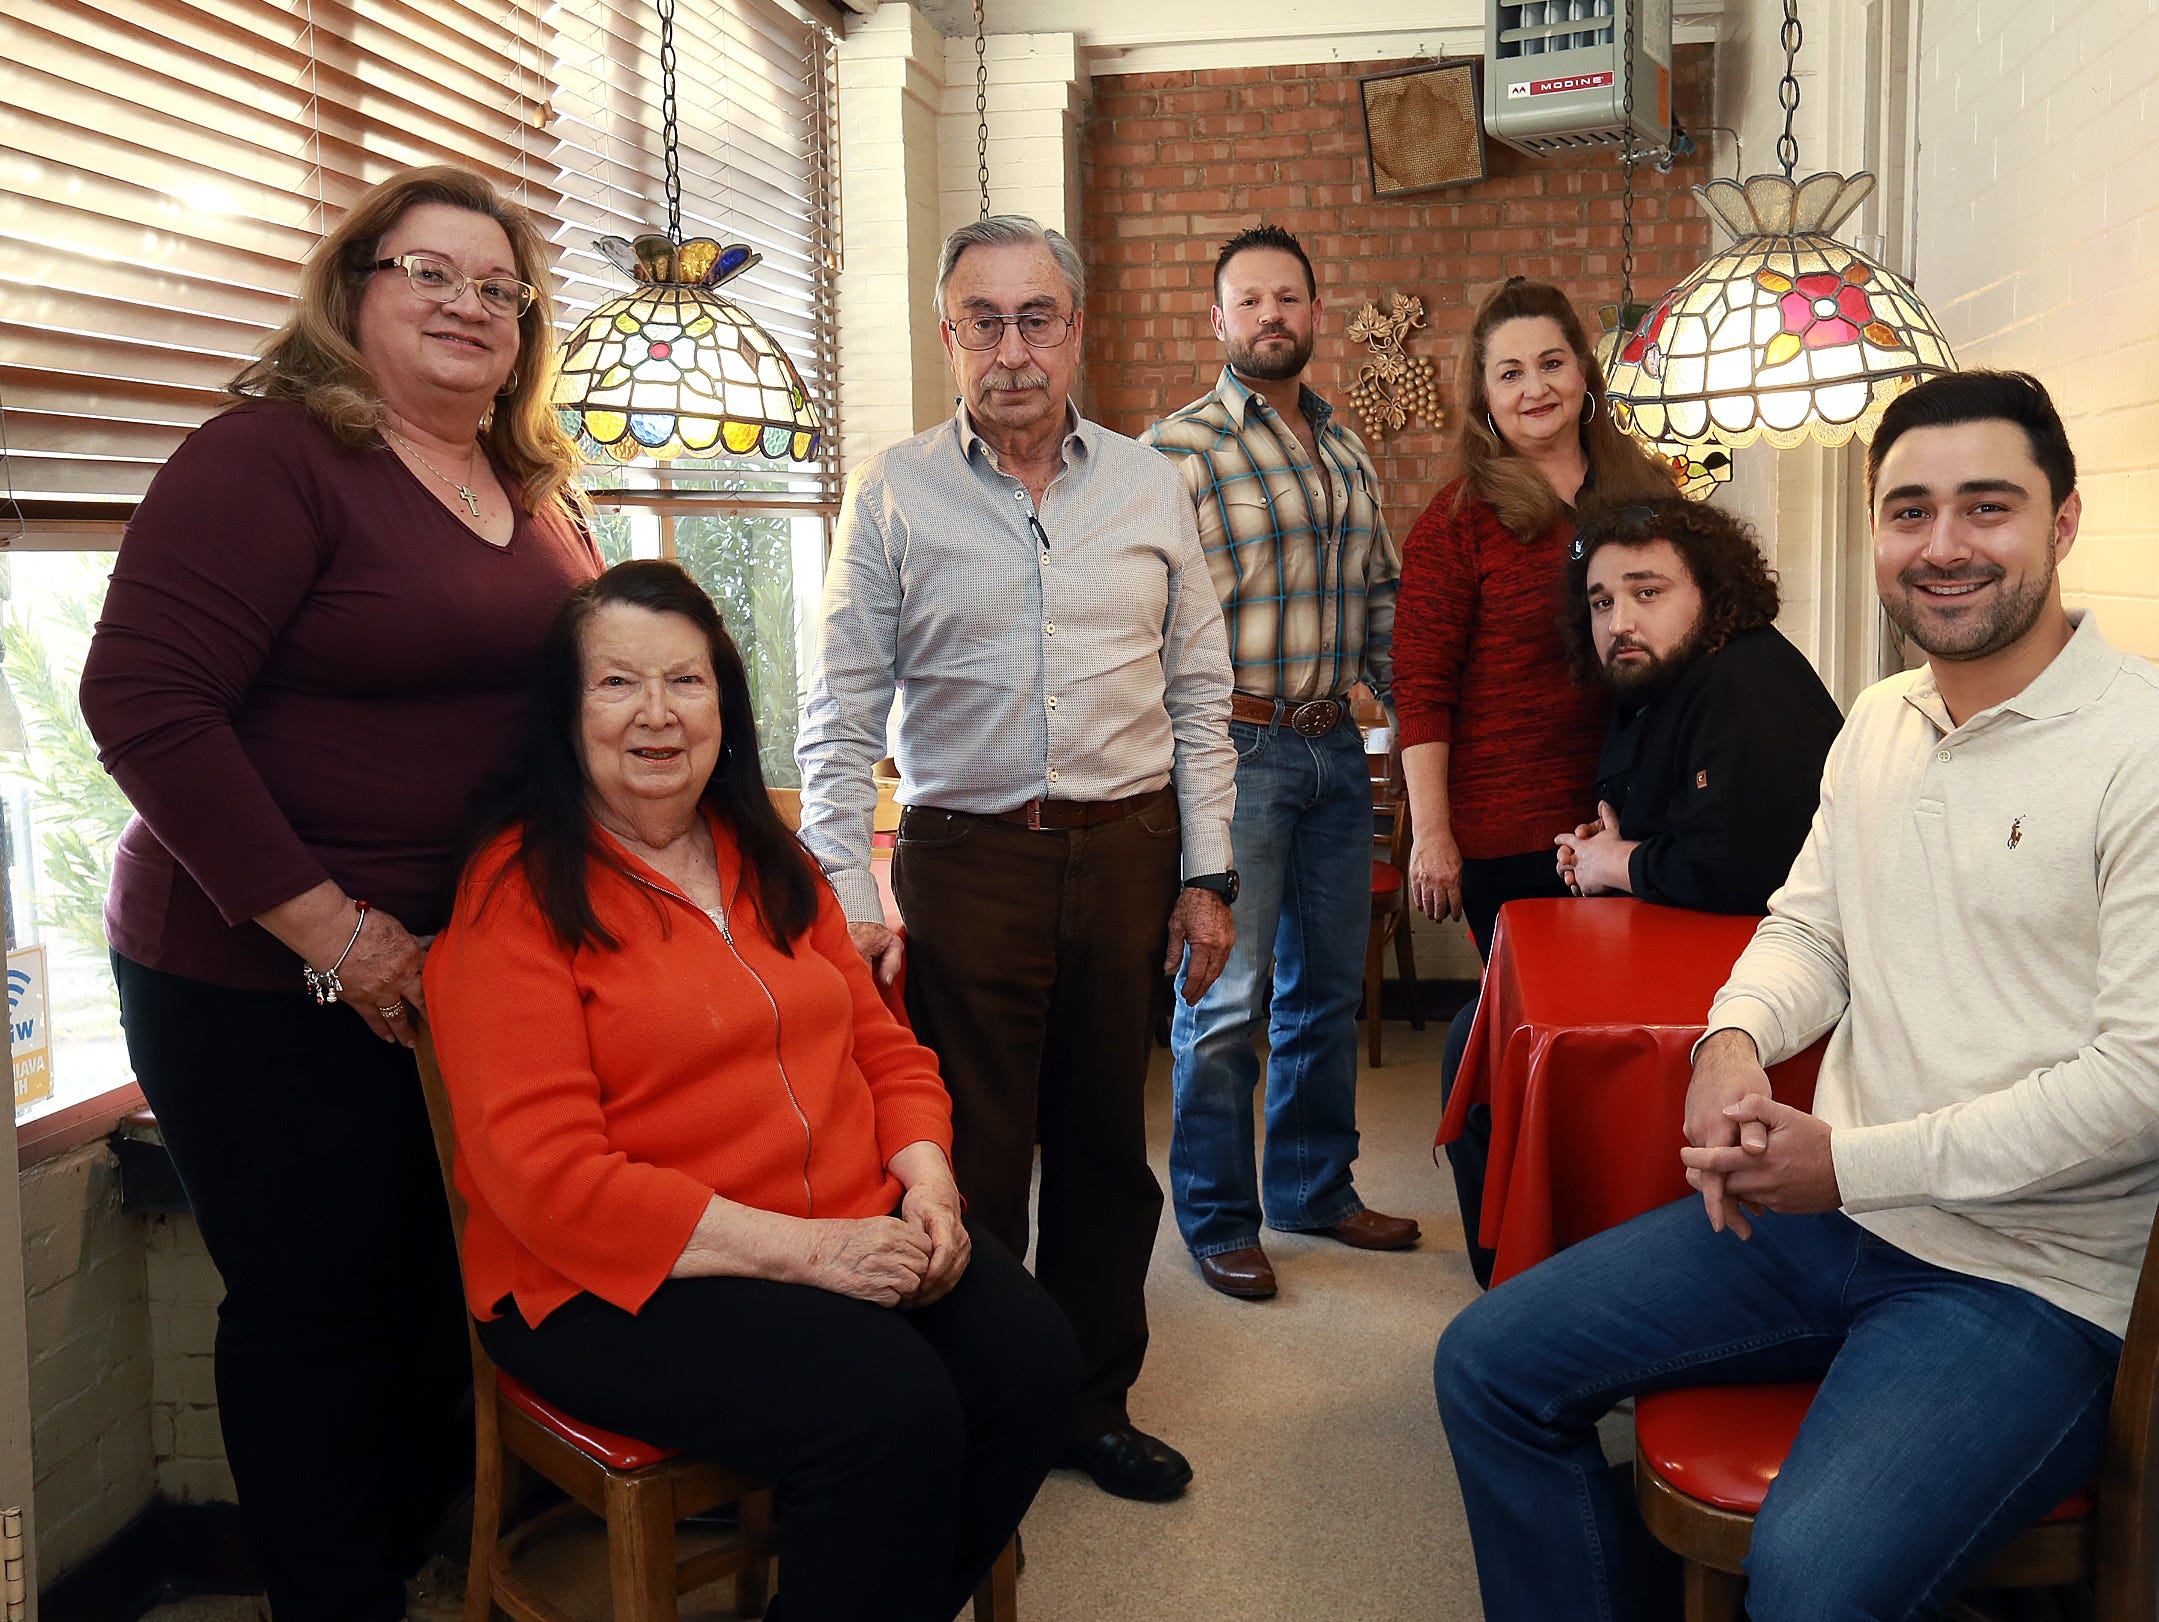 The Italian Kitchen family, from left to right, Gina Maranto-Castro, founder Rita Rodriguez, Marco Antonio Rodriguez, Santiago Alonso III, Roseann Maranto-Alonso, Andres Alonso and Marco Antonio Alonso.